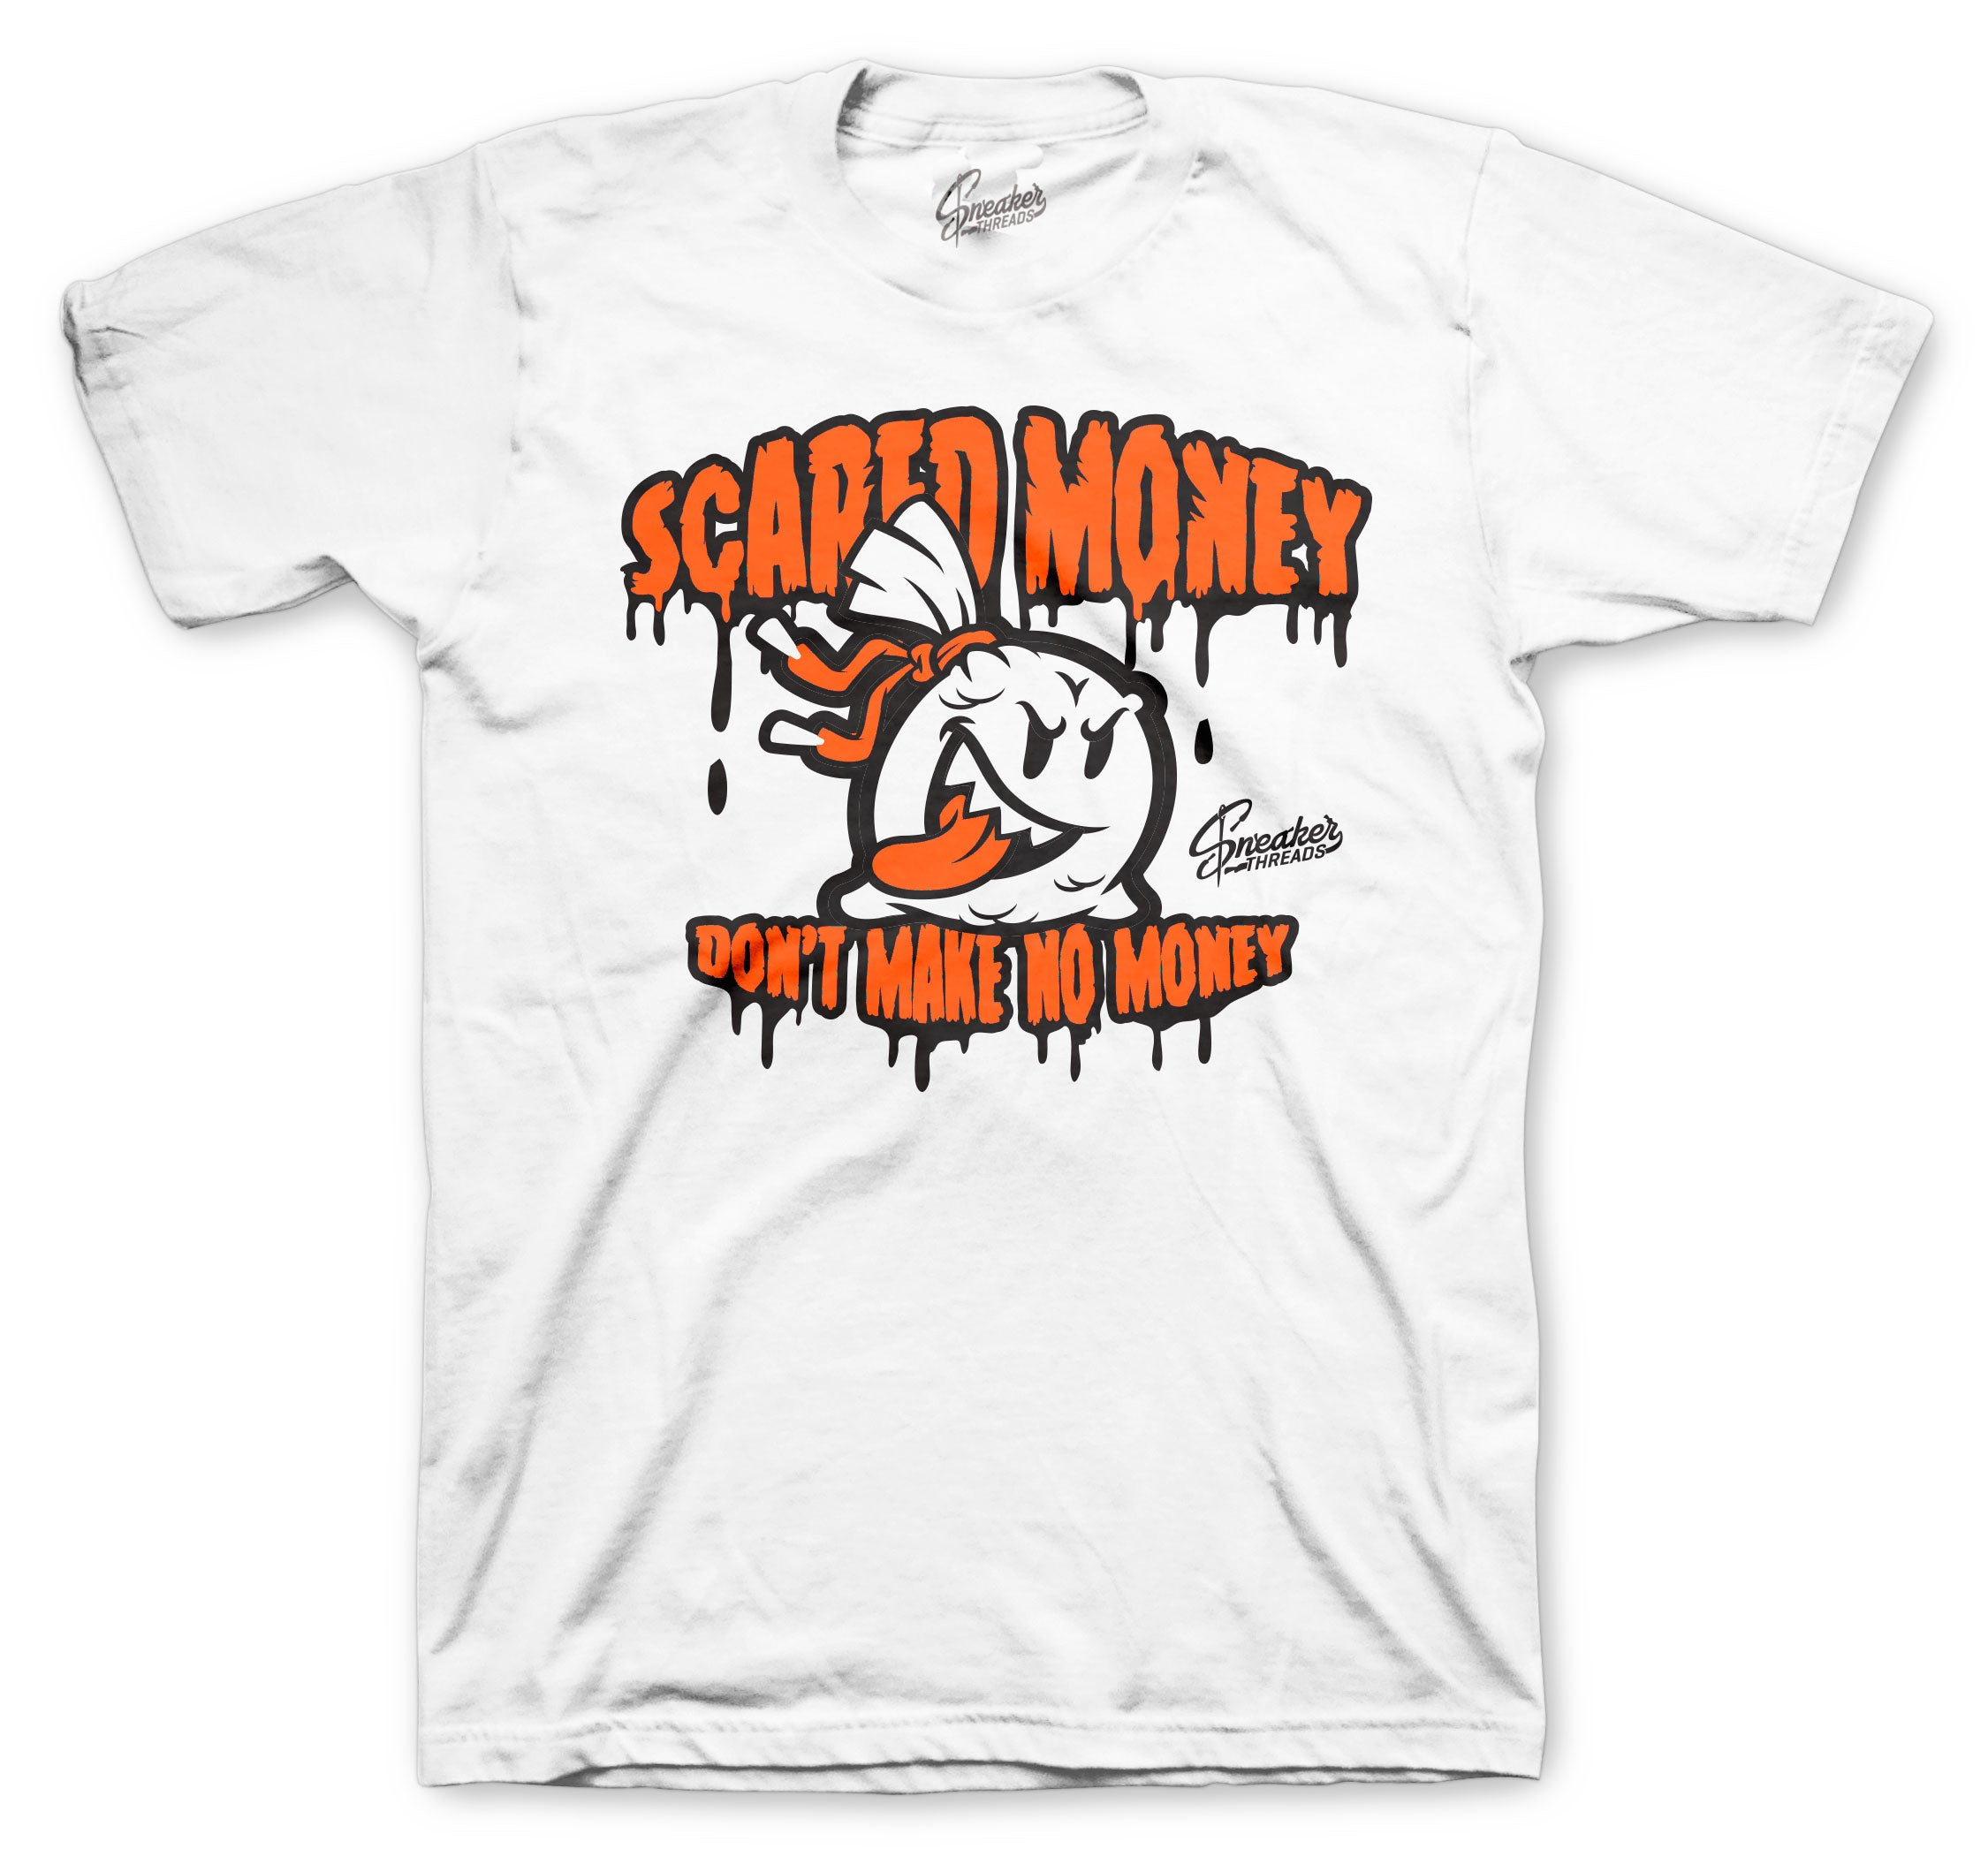 Foams Shattered Back Boards coolest Scared money shirt for men